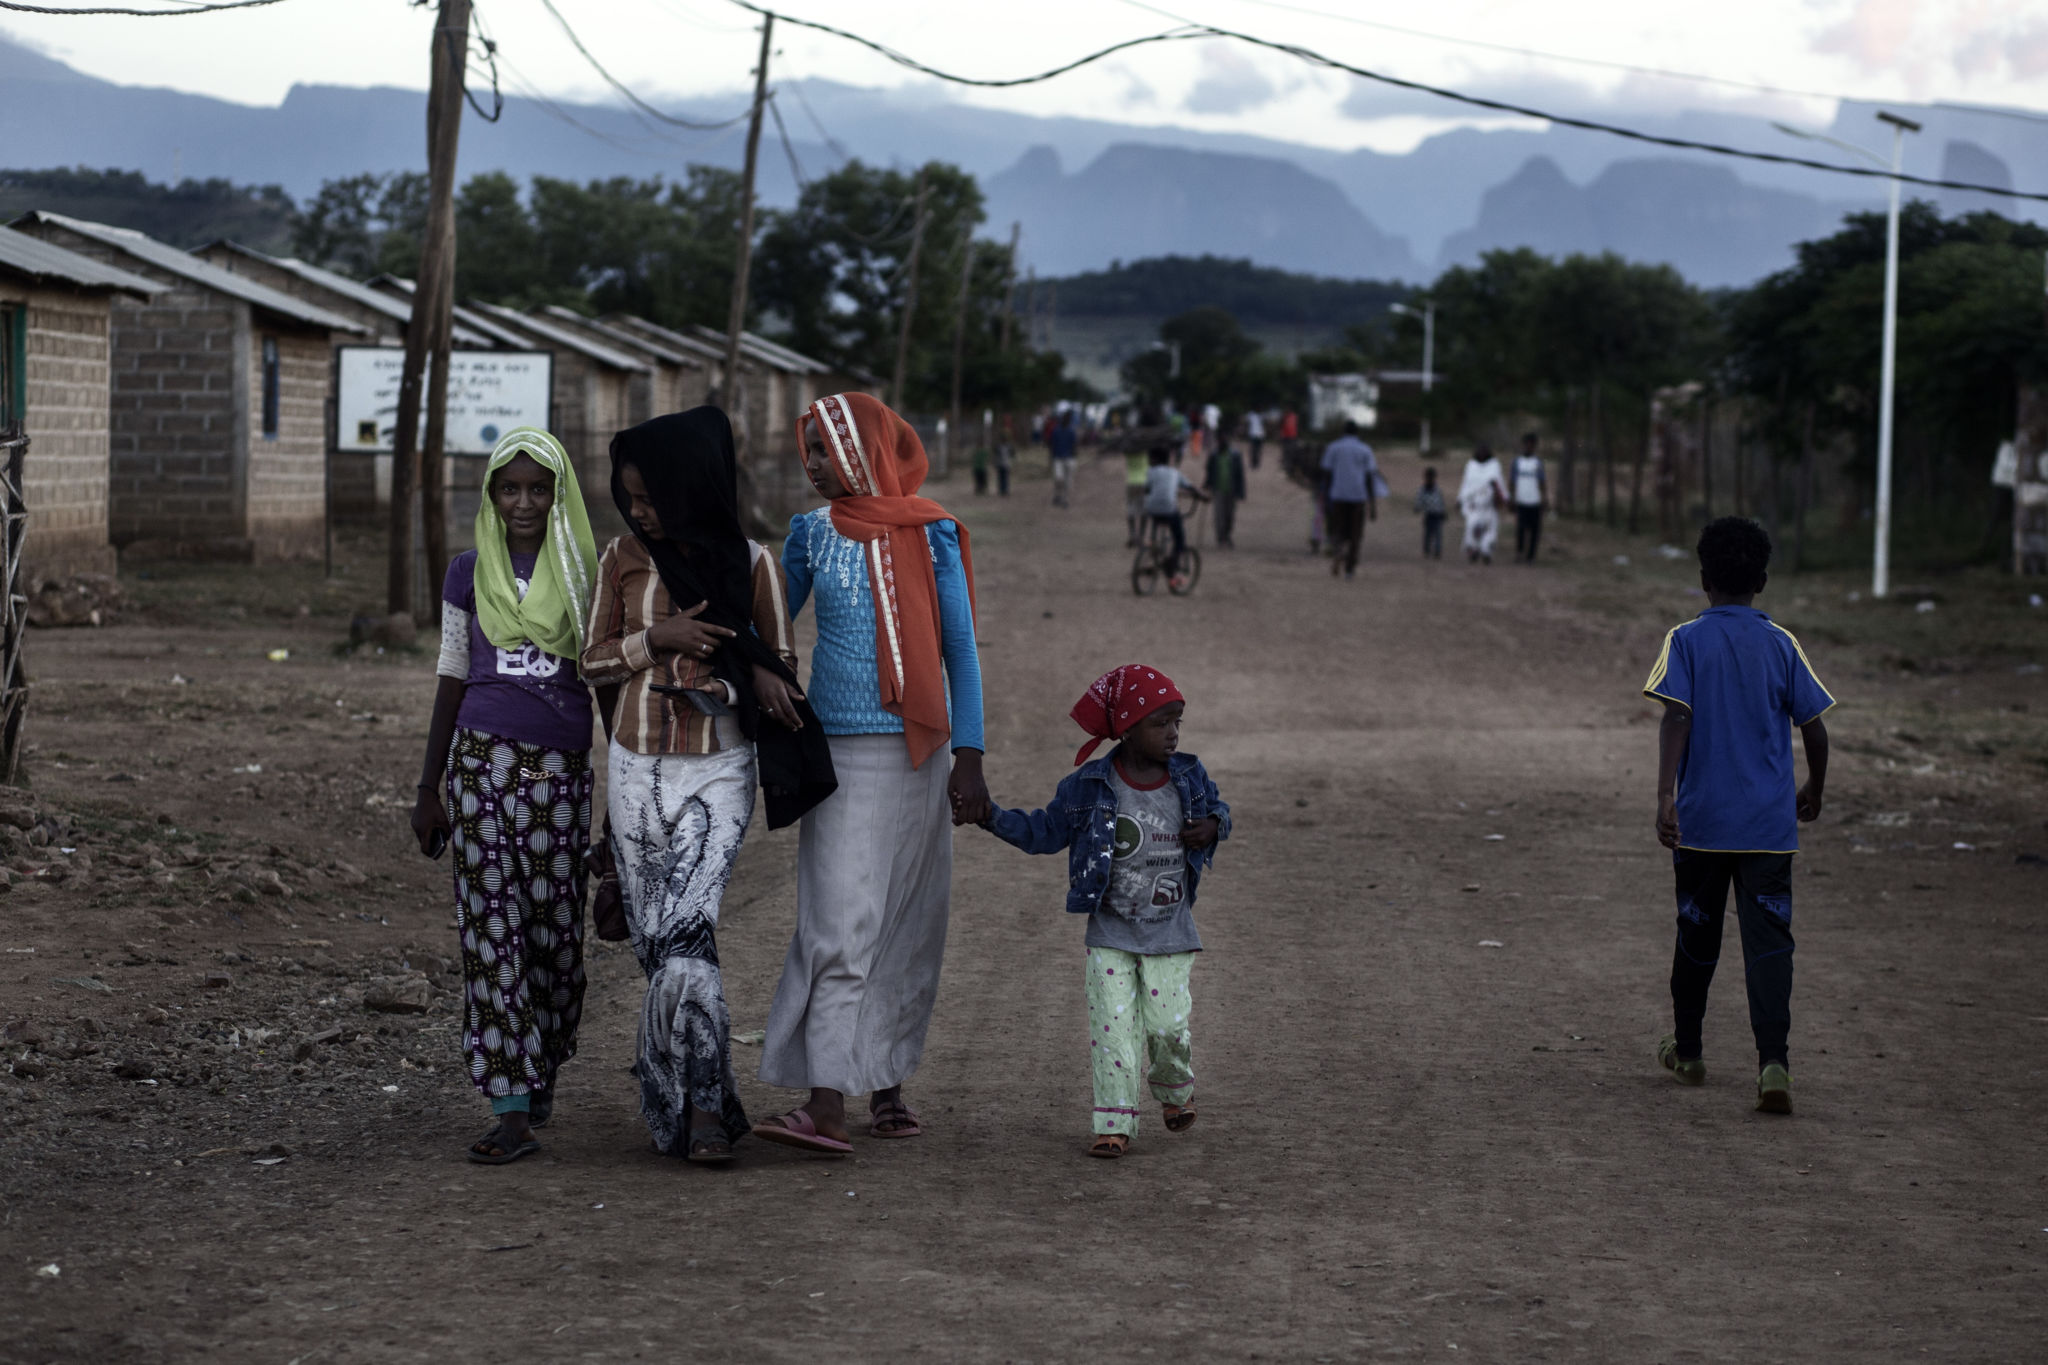 Three young women walking along a dirt road with a toddler.